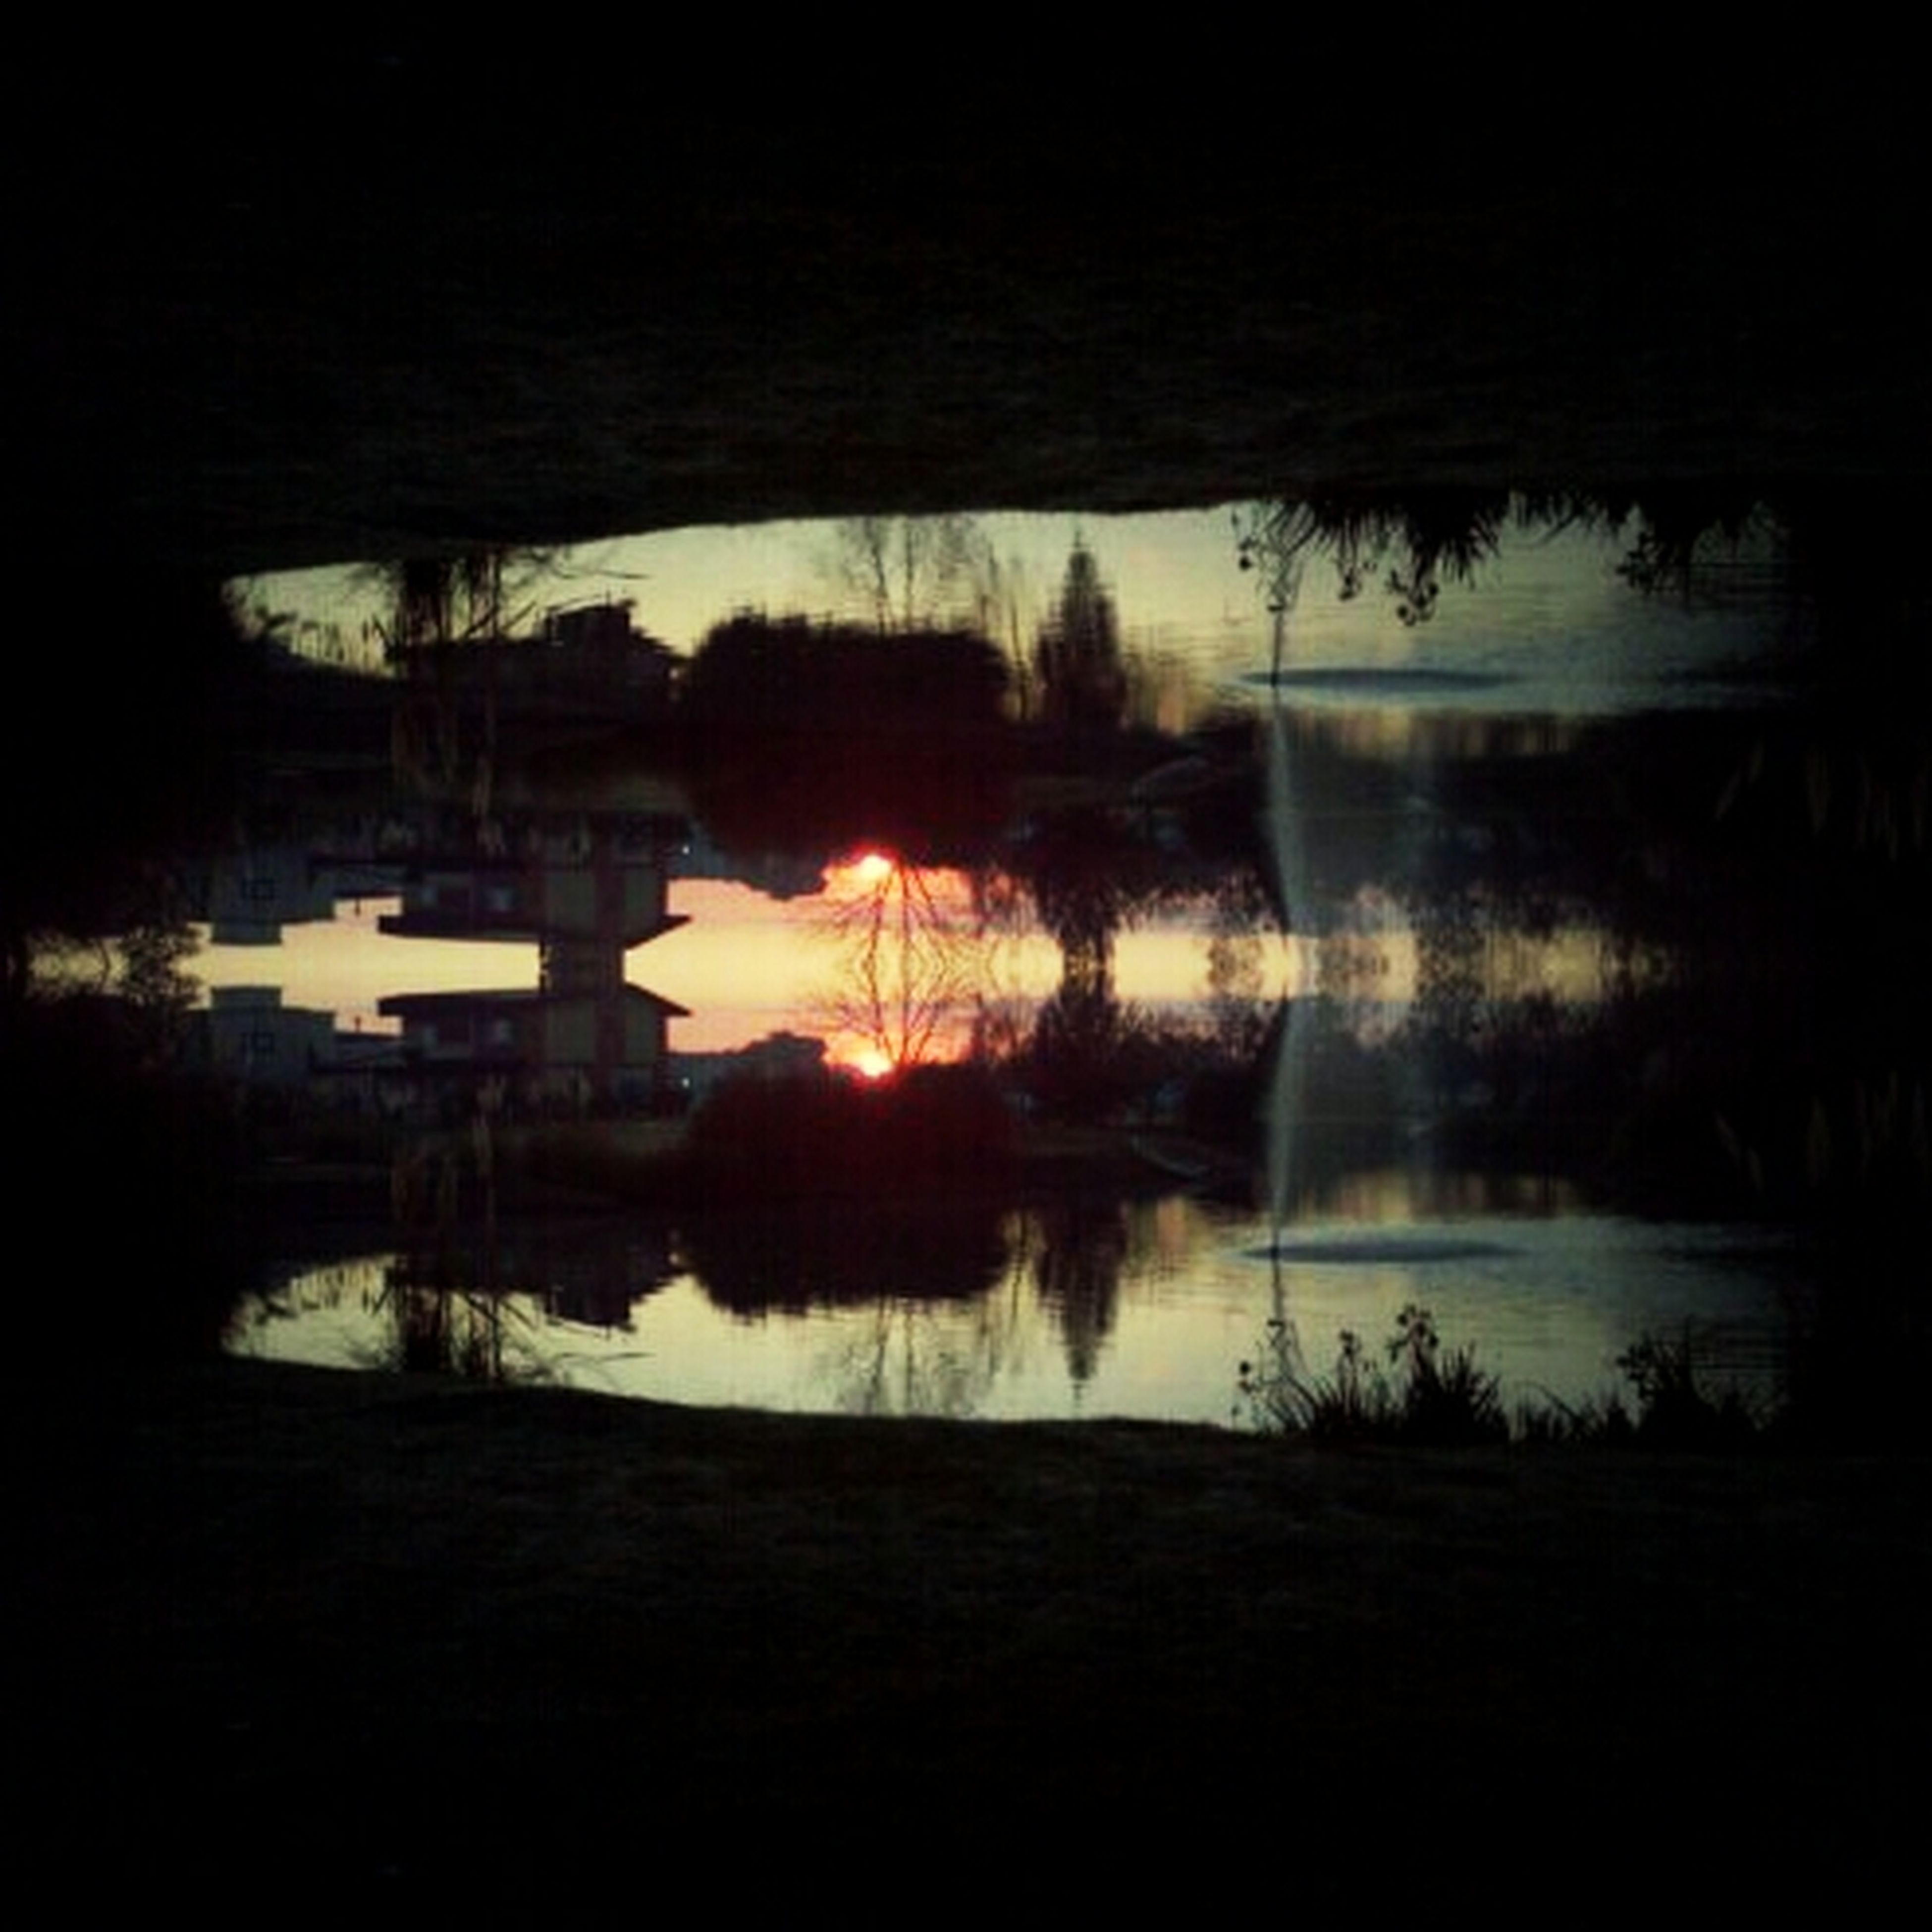 reflection, water, lake, tree, built structure, standing water, architecture, silhouette, river, sky, building exterior, tranquility, waterfront, nature, tranquil scene, pond, beauty in nature, night, scenics, no people